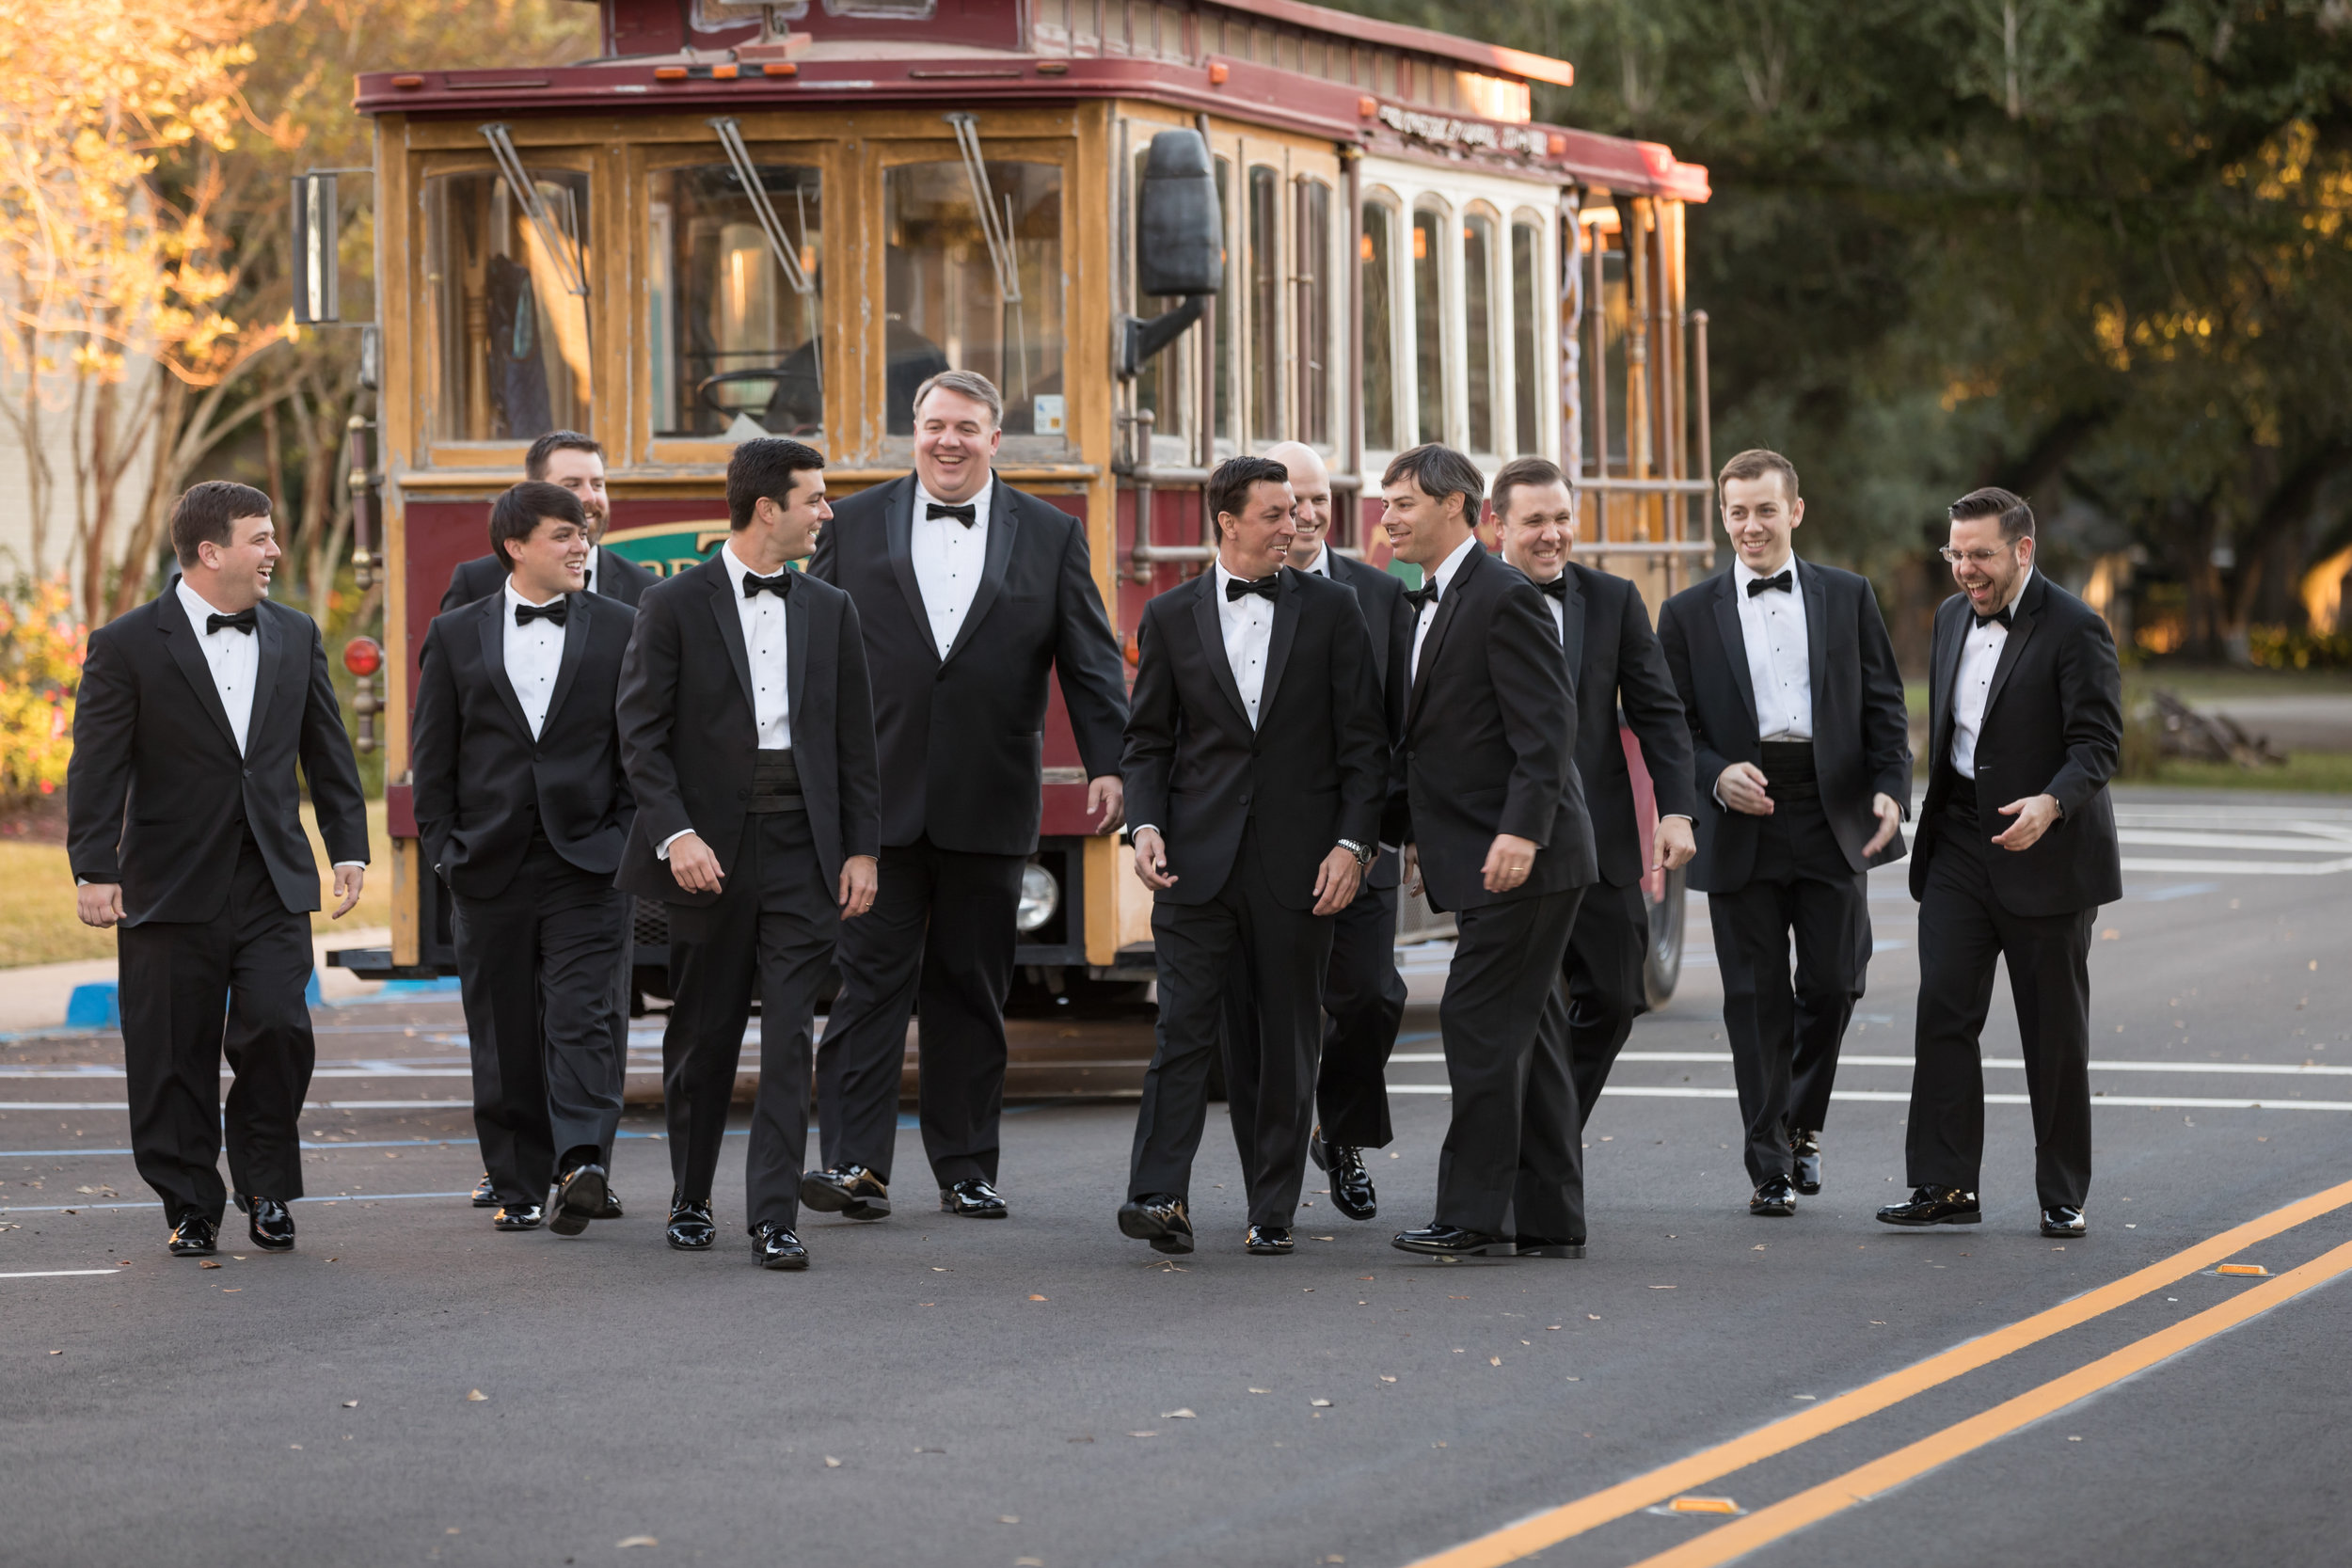 Southern Fete, Southern Wedding, Groom and Groomsman, Red Trolley, Jay Faugot Photography